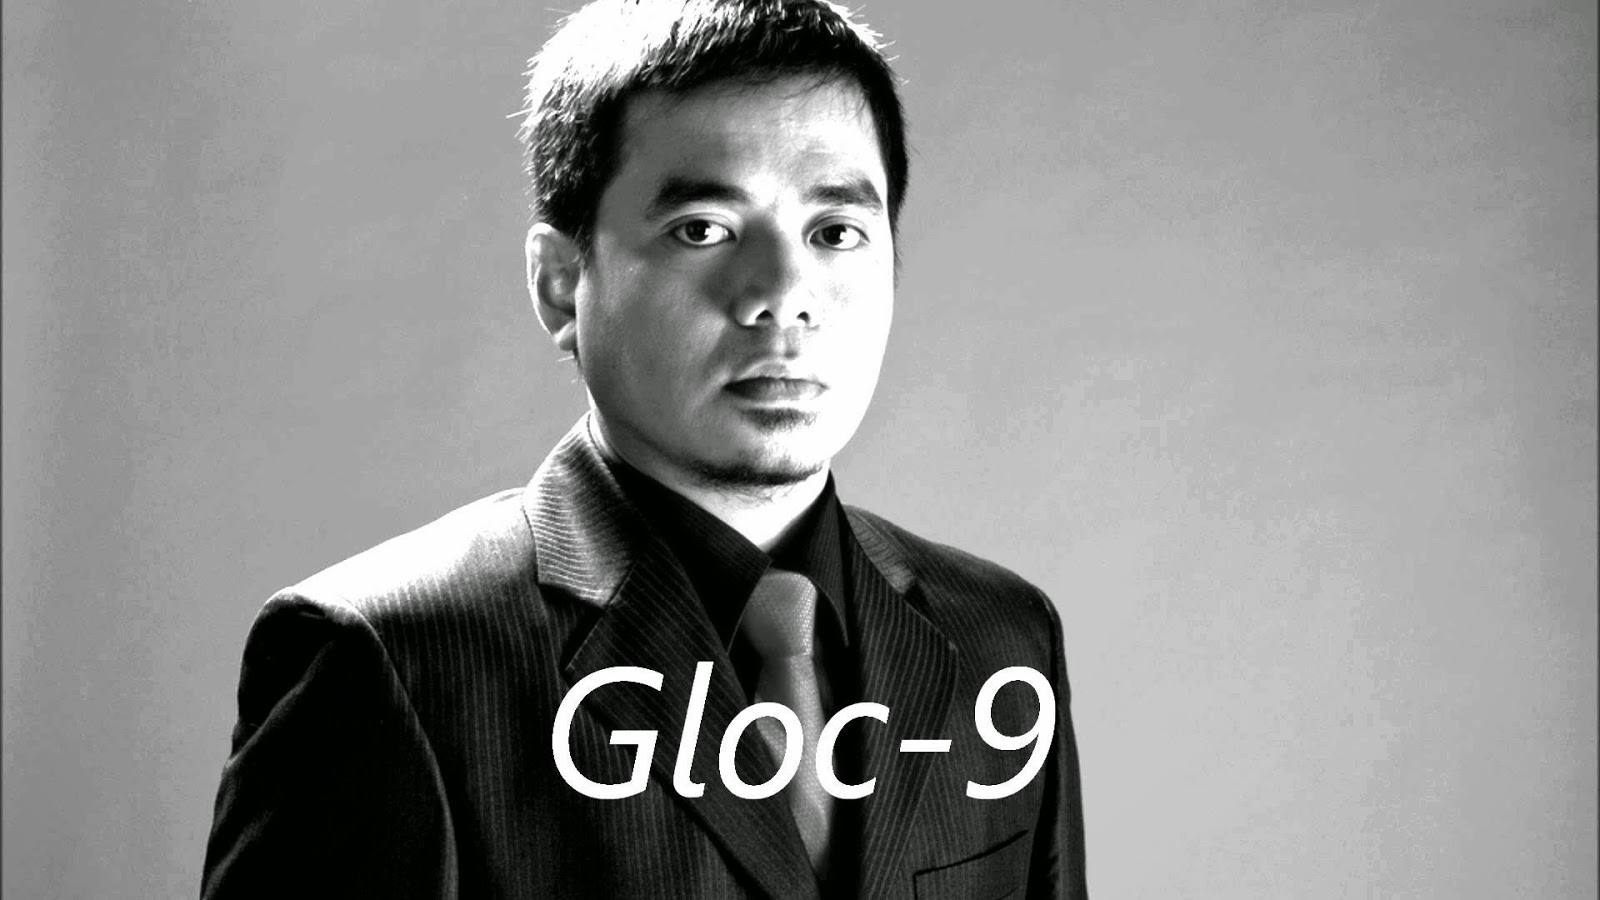 Gloc 9 To Release Life Documentary Instead of Album